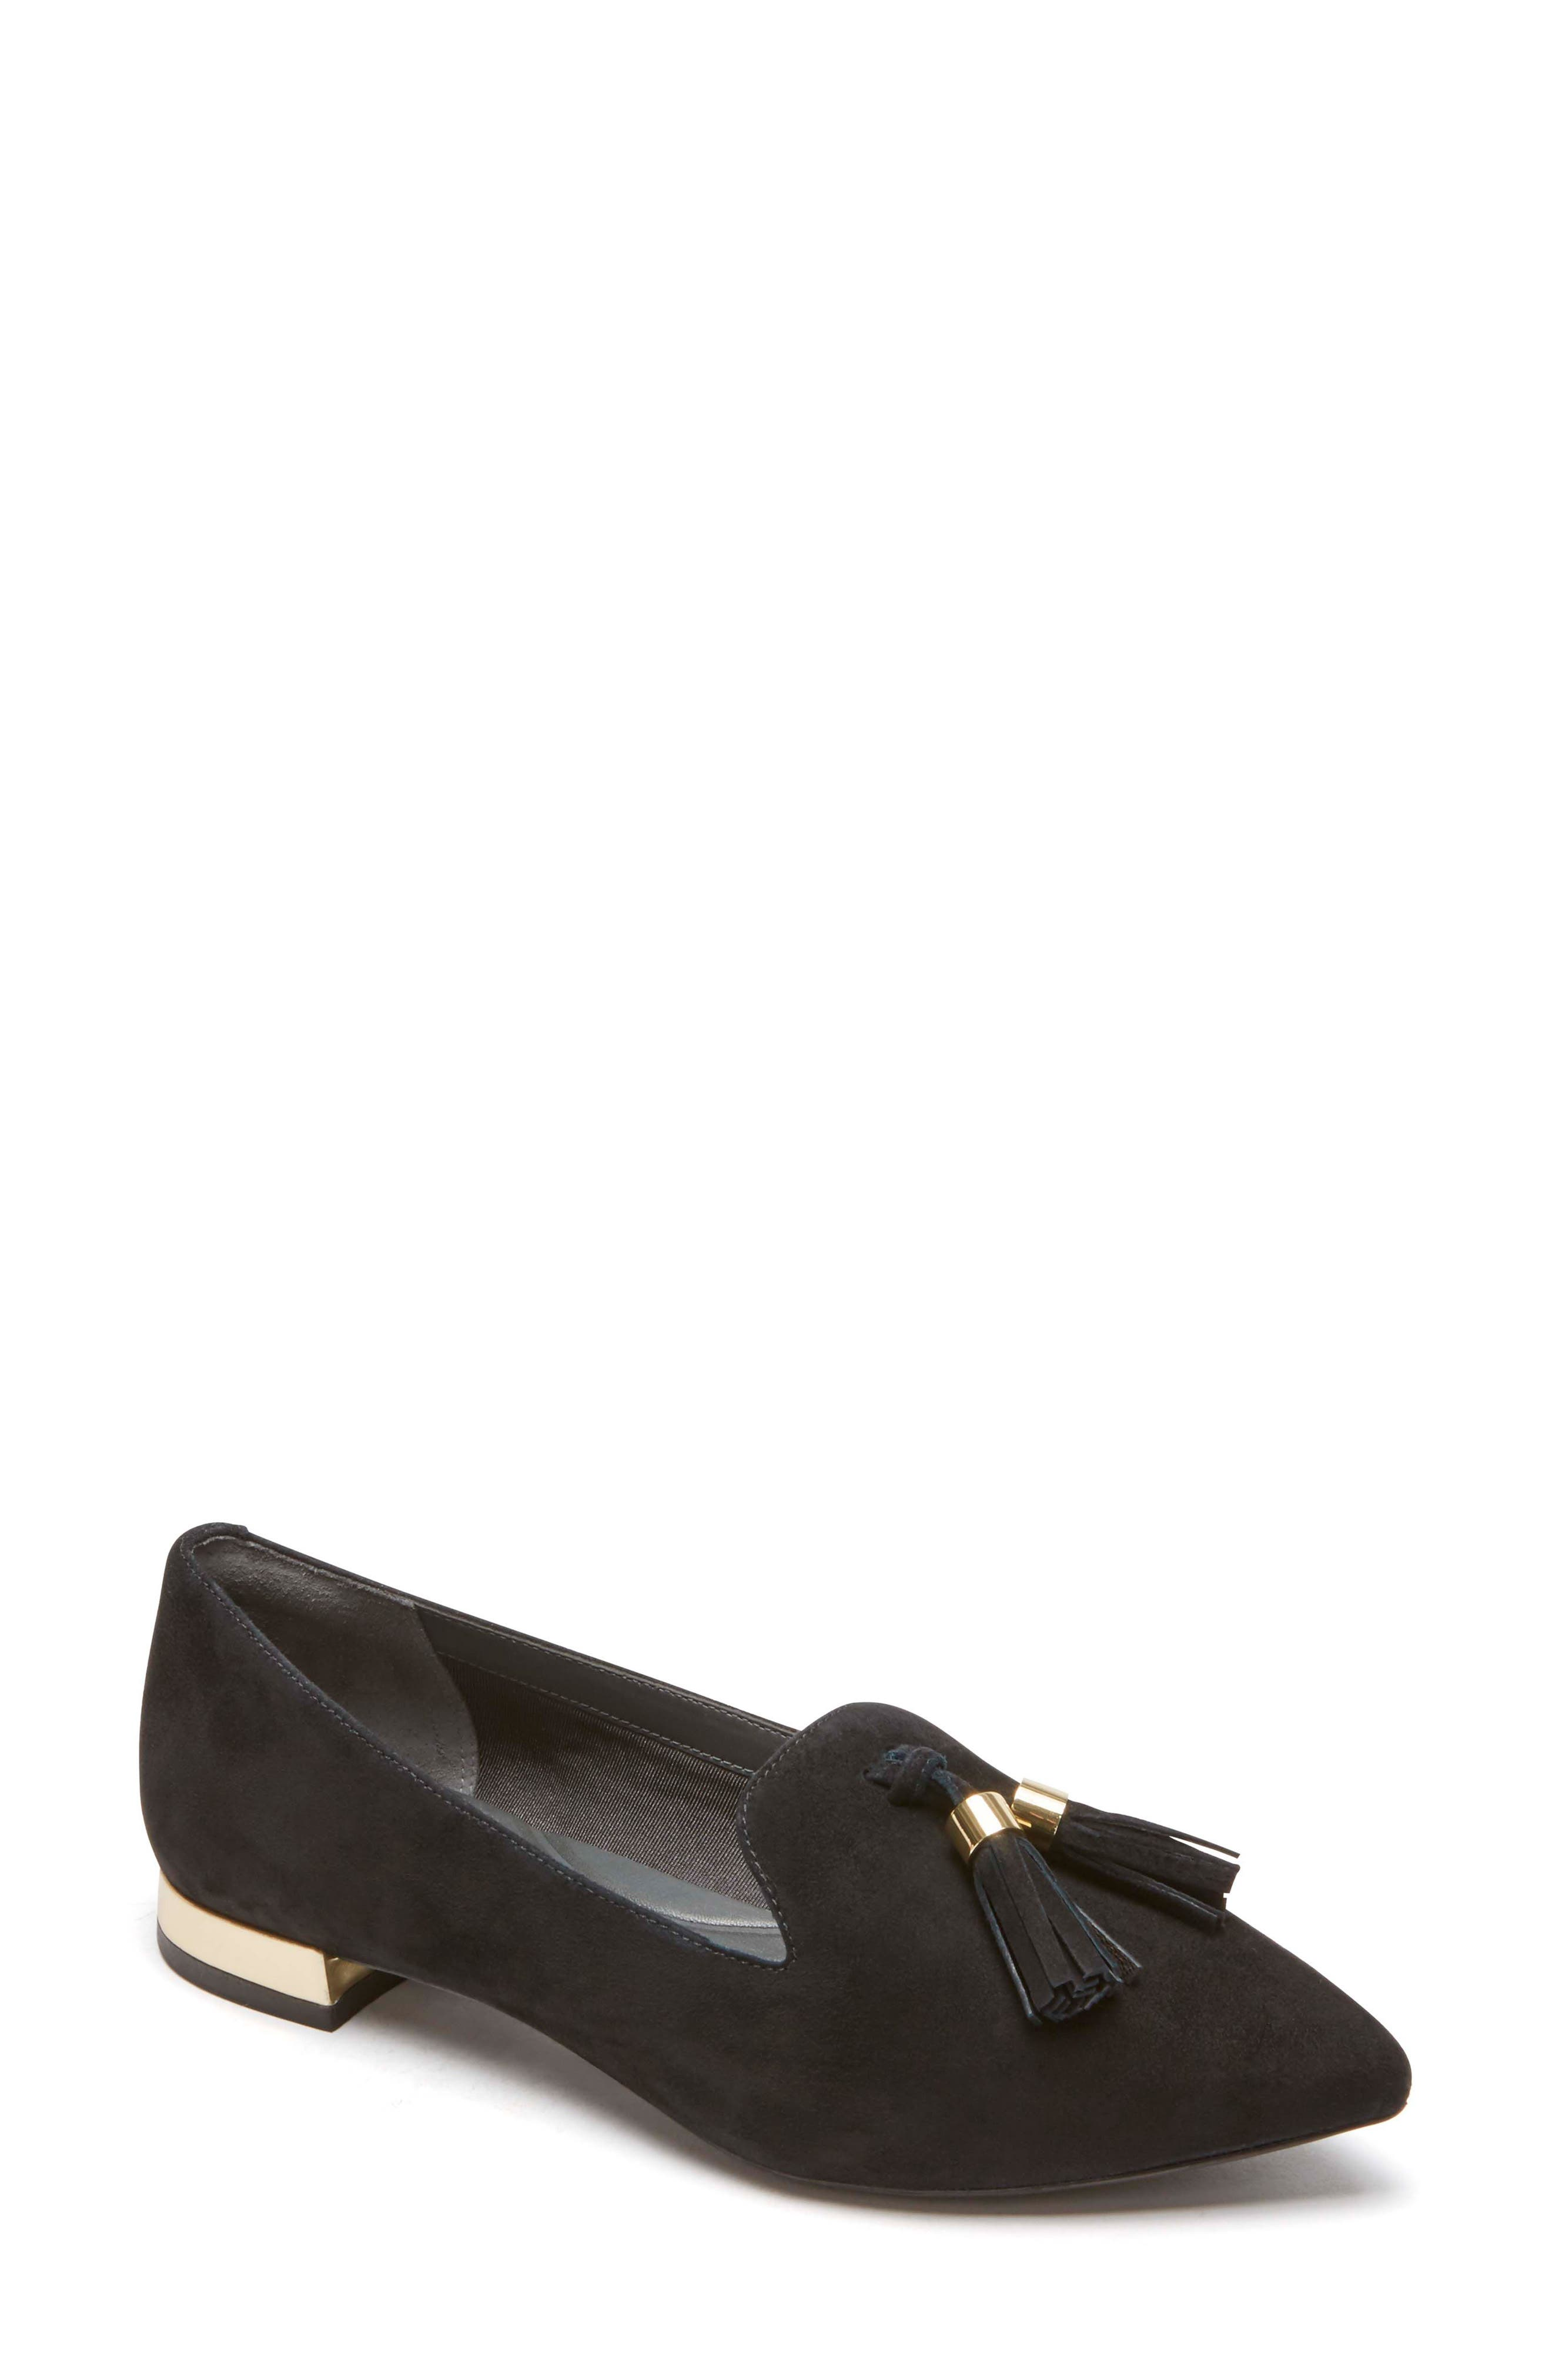 Total Motion Zuly Luxe Pointy Toe Loafer,                             Main thumbnail 1, color,                             BLACK SUEDE